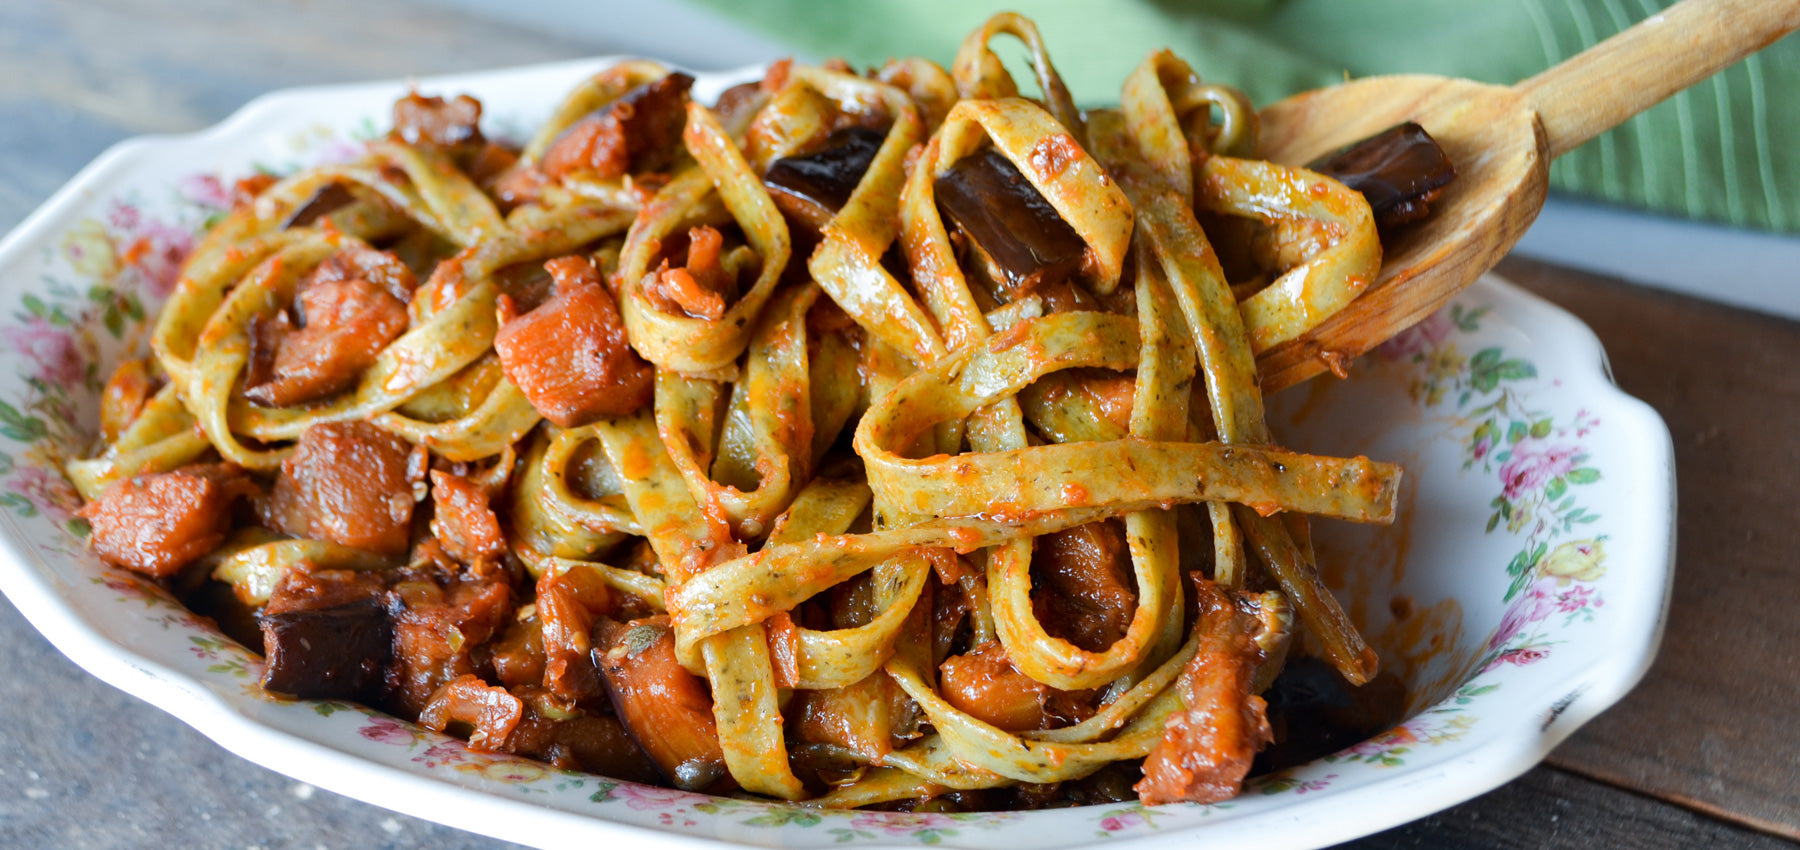 Basil Garlic Fettuccine with Caponata